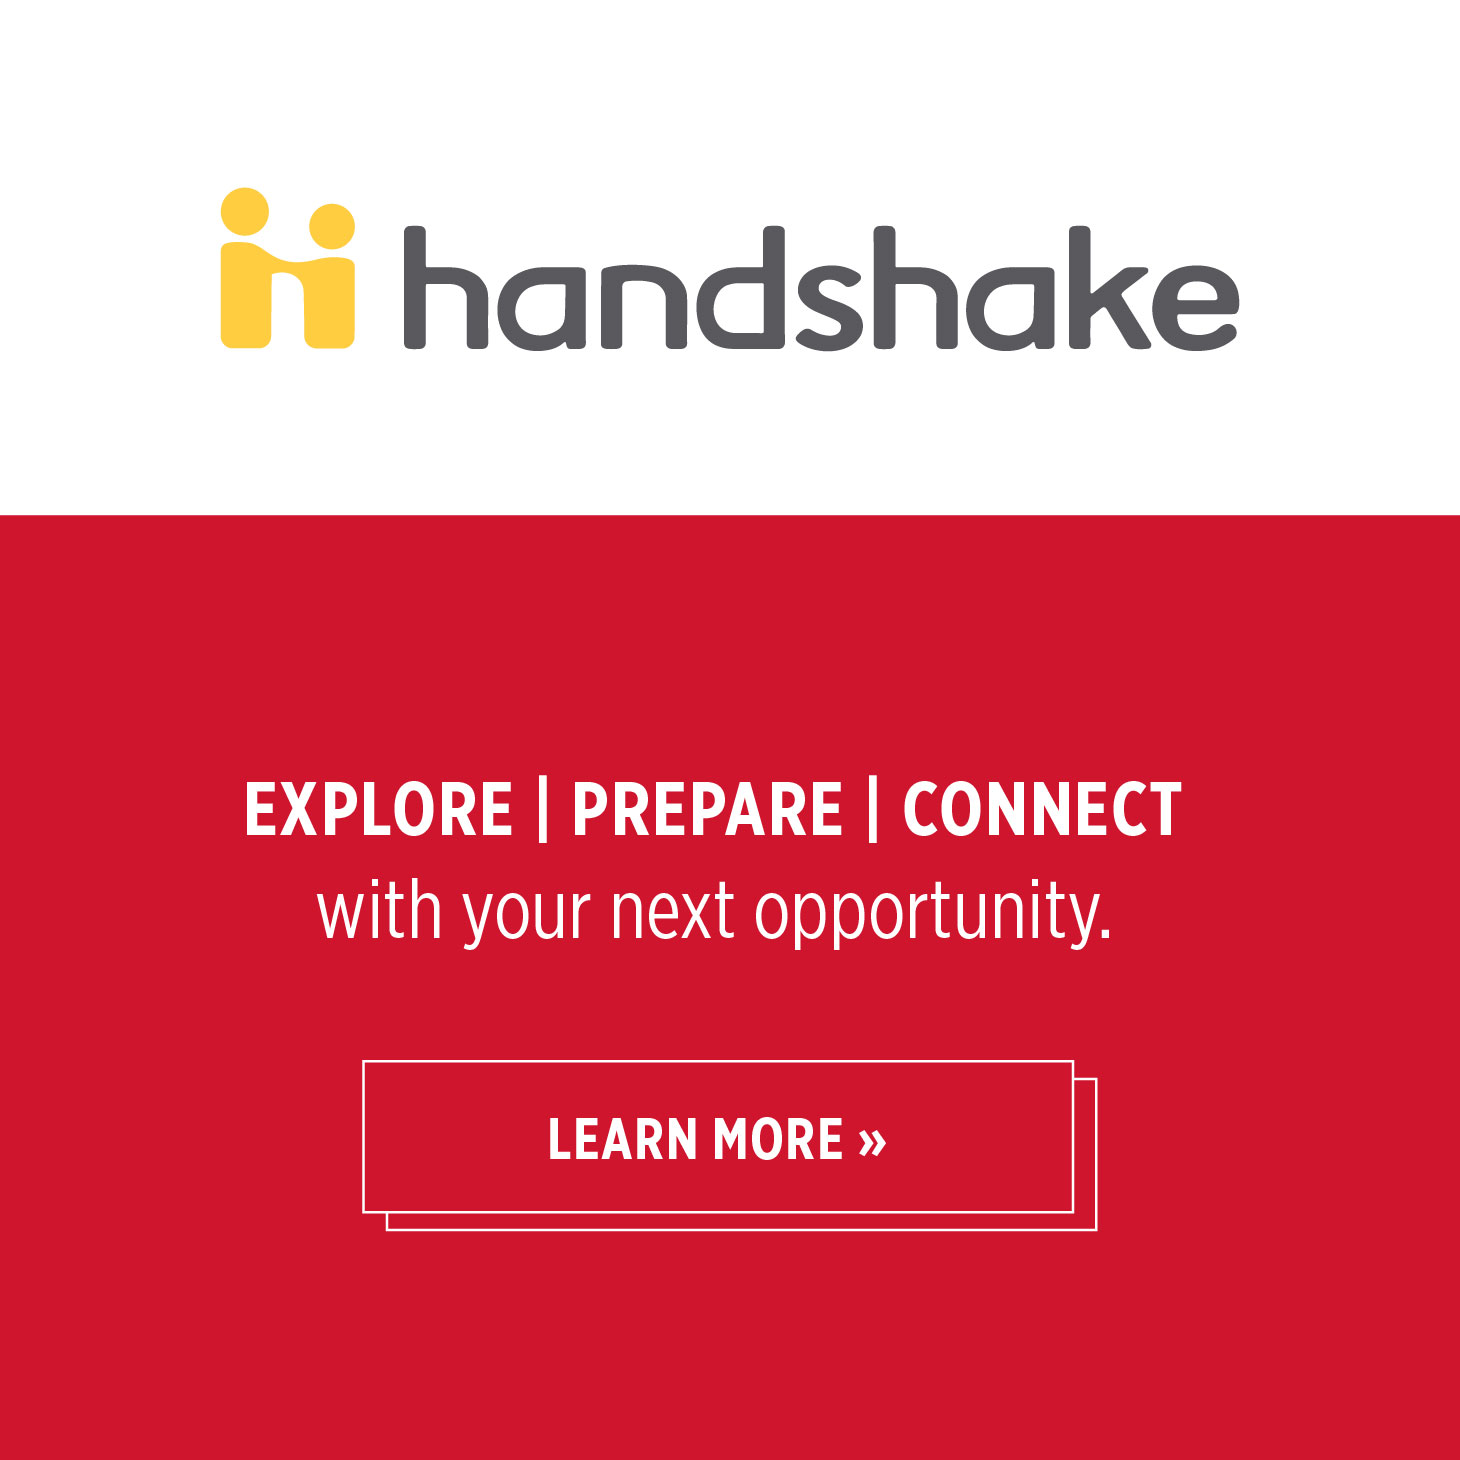 Learn more about the opportunities in Handshake